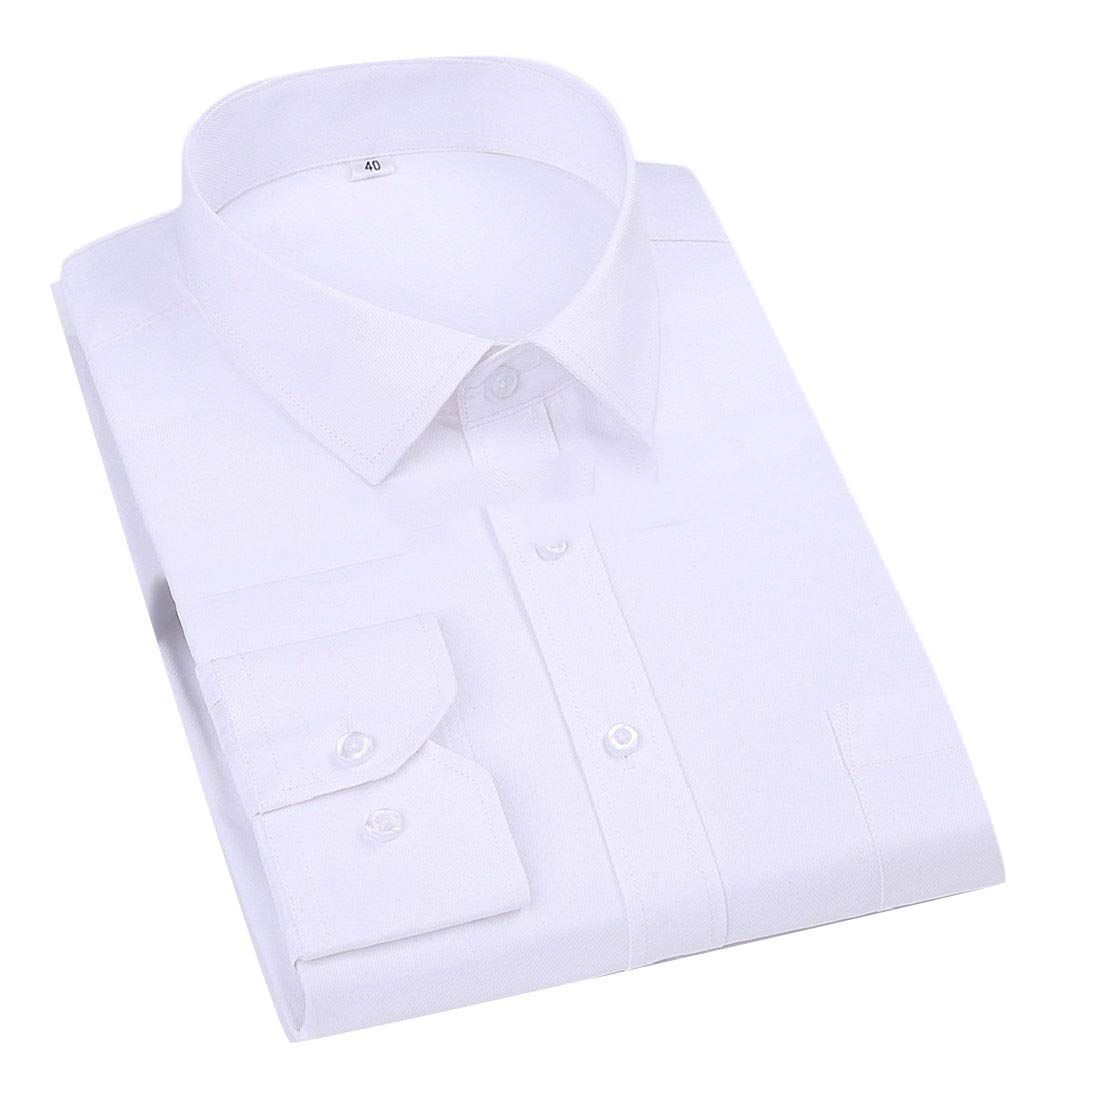 RDHOPE-Men Career Long Sleeve Solid Color Button Down Prodenia Shirts